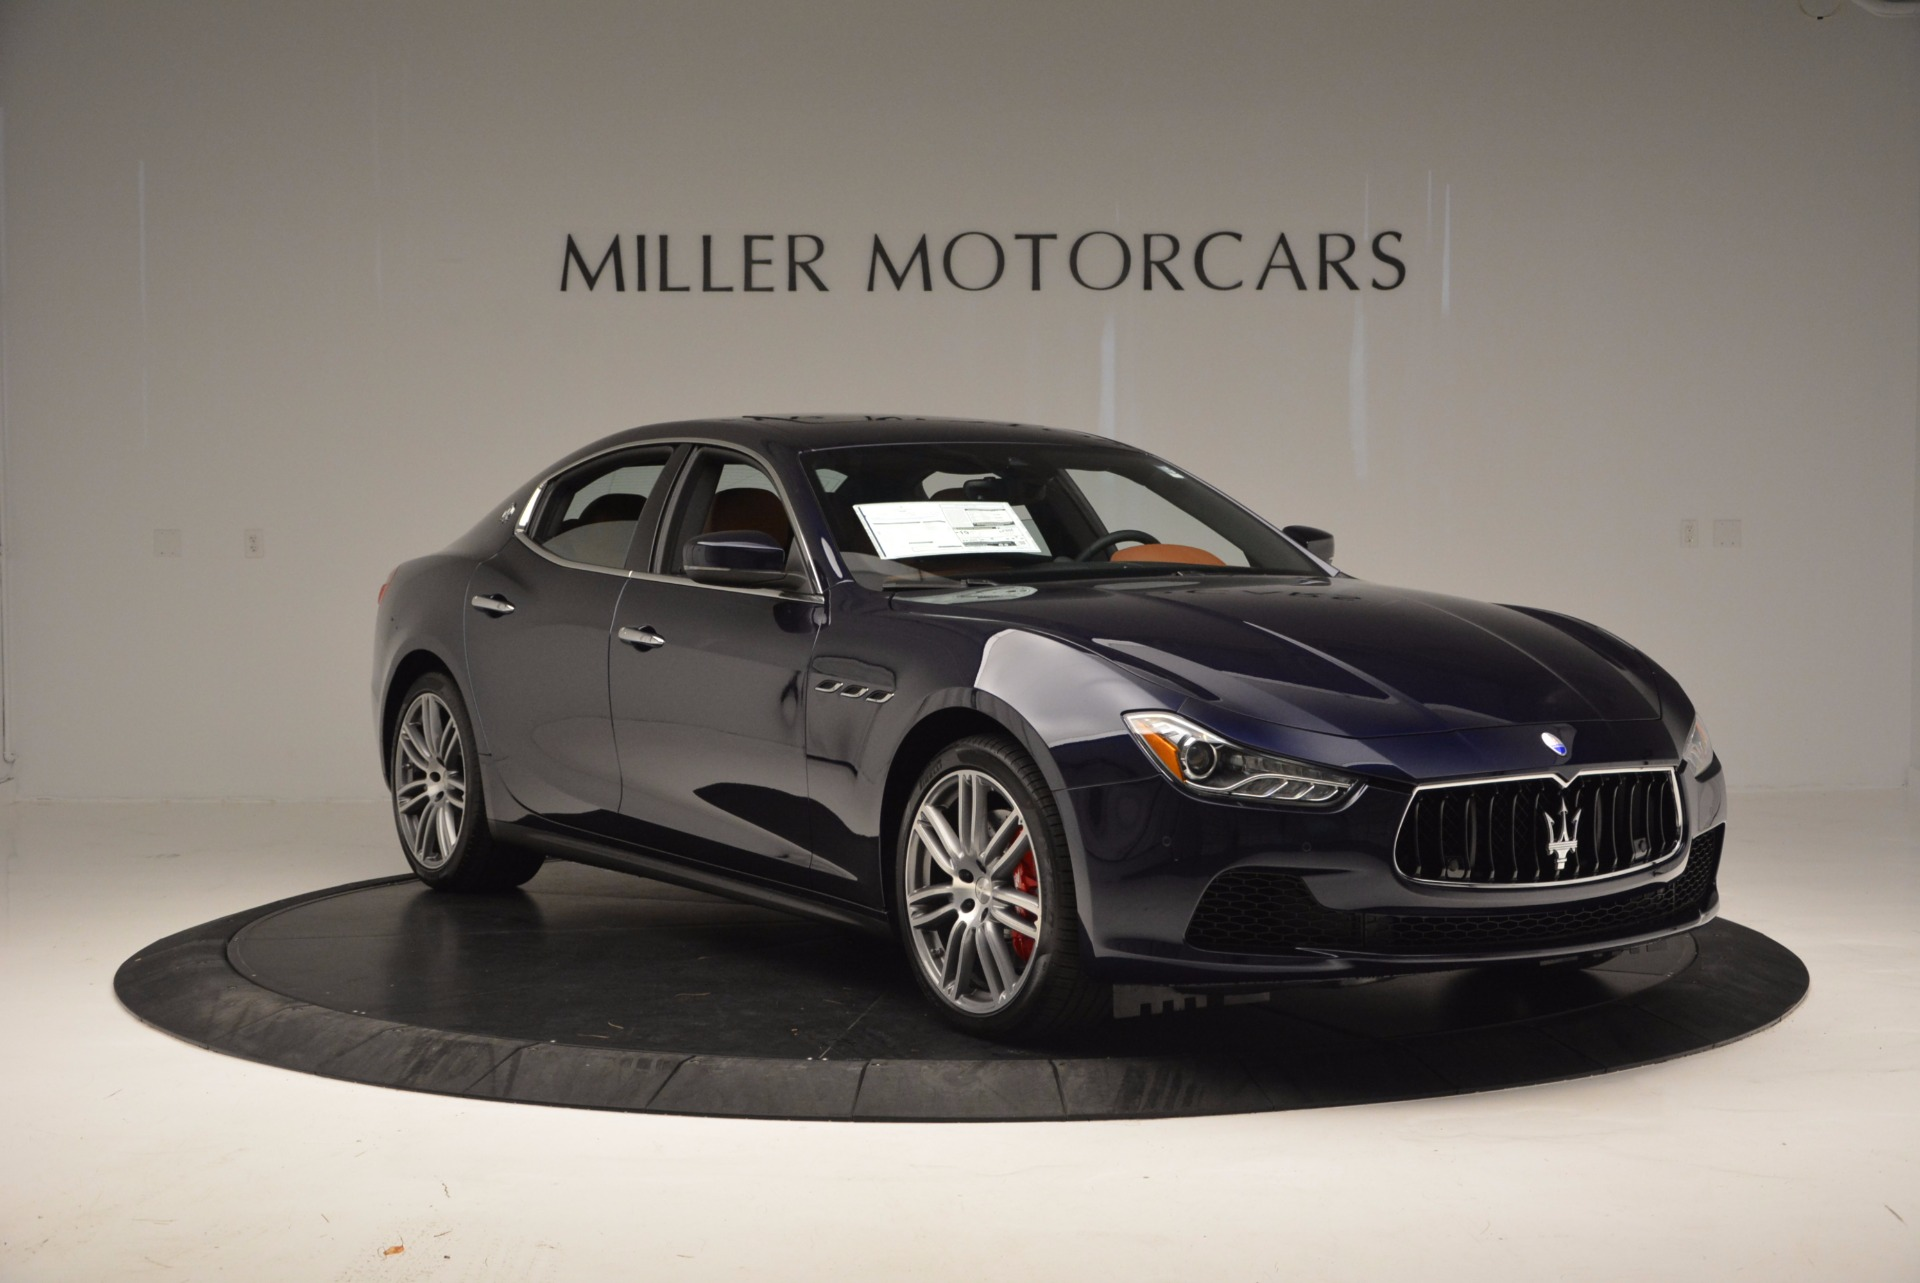 New 2017 Maserati Ghibli S Q4 For Sale In Greenwich, CT 1153_p10